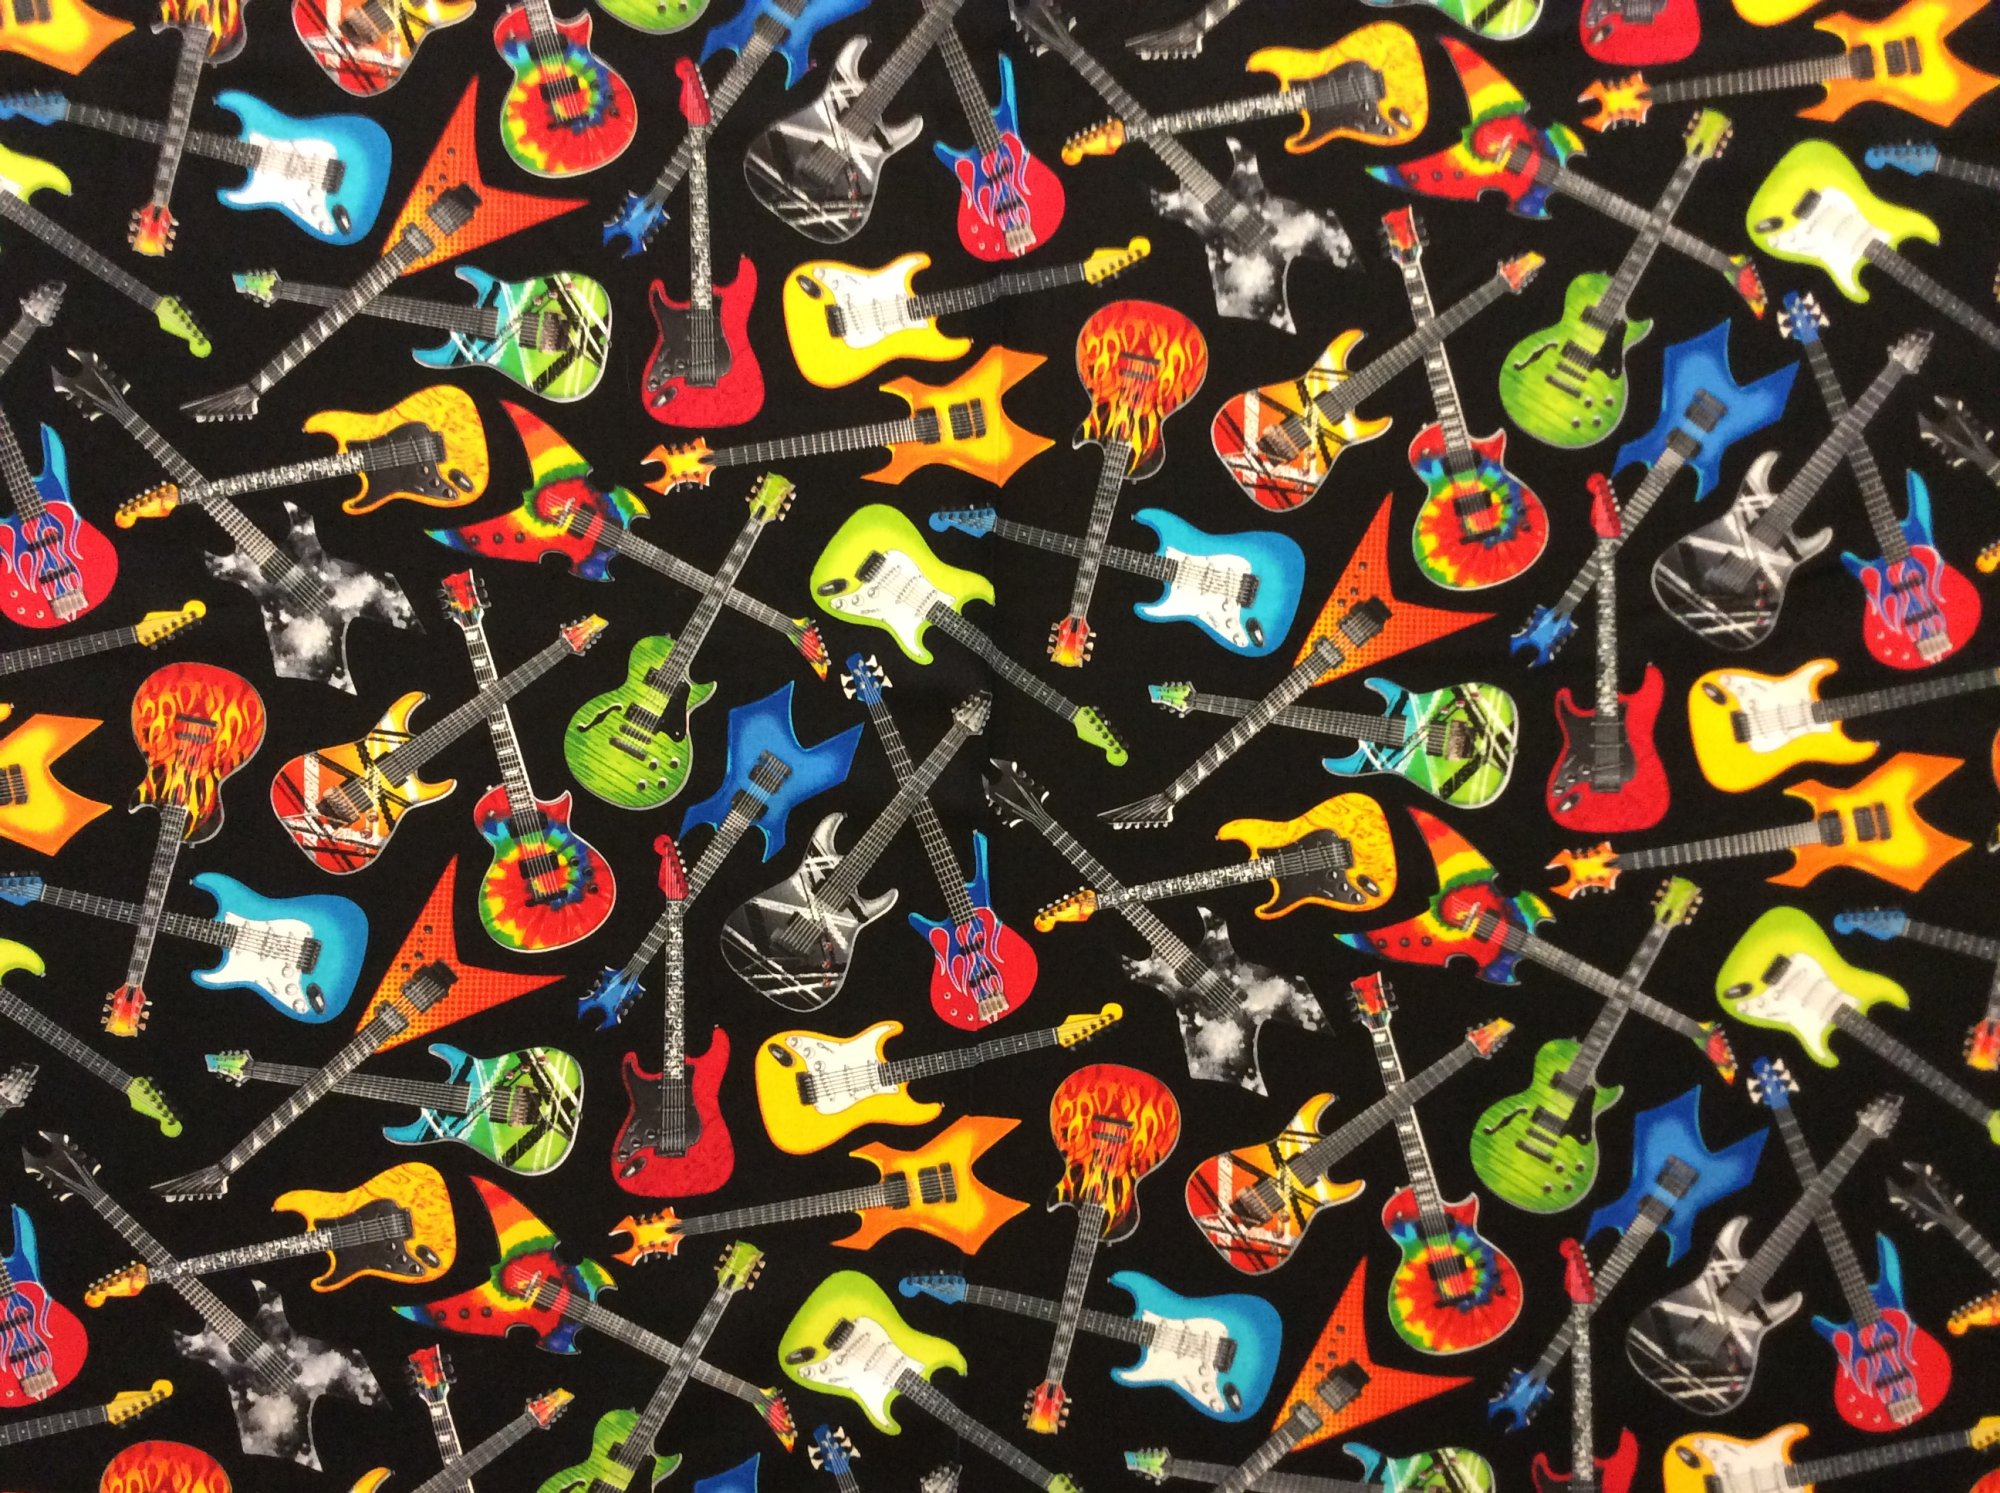 Electric Guitar Music Instrument Rock Band Rocker Cotton Quilt Fabric NT70